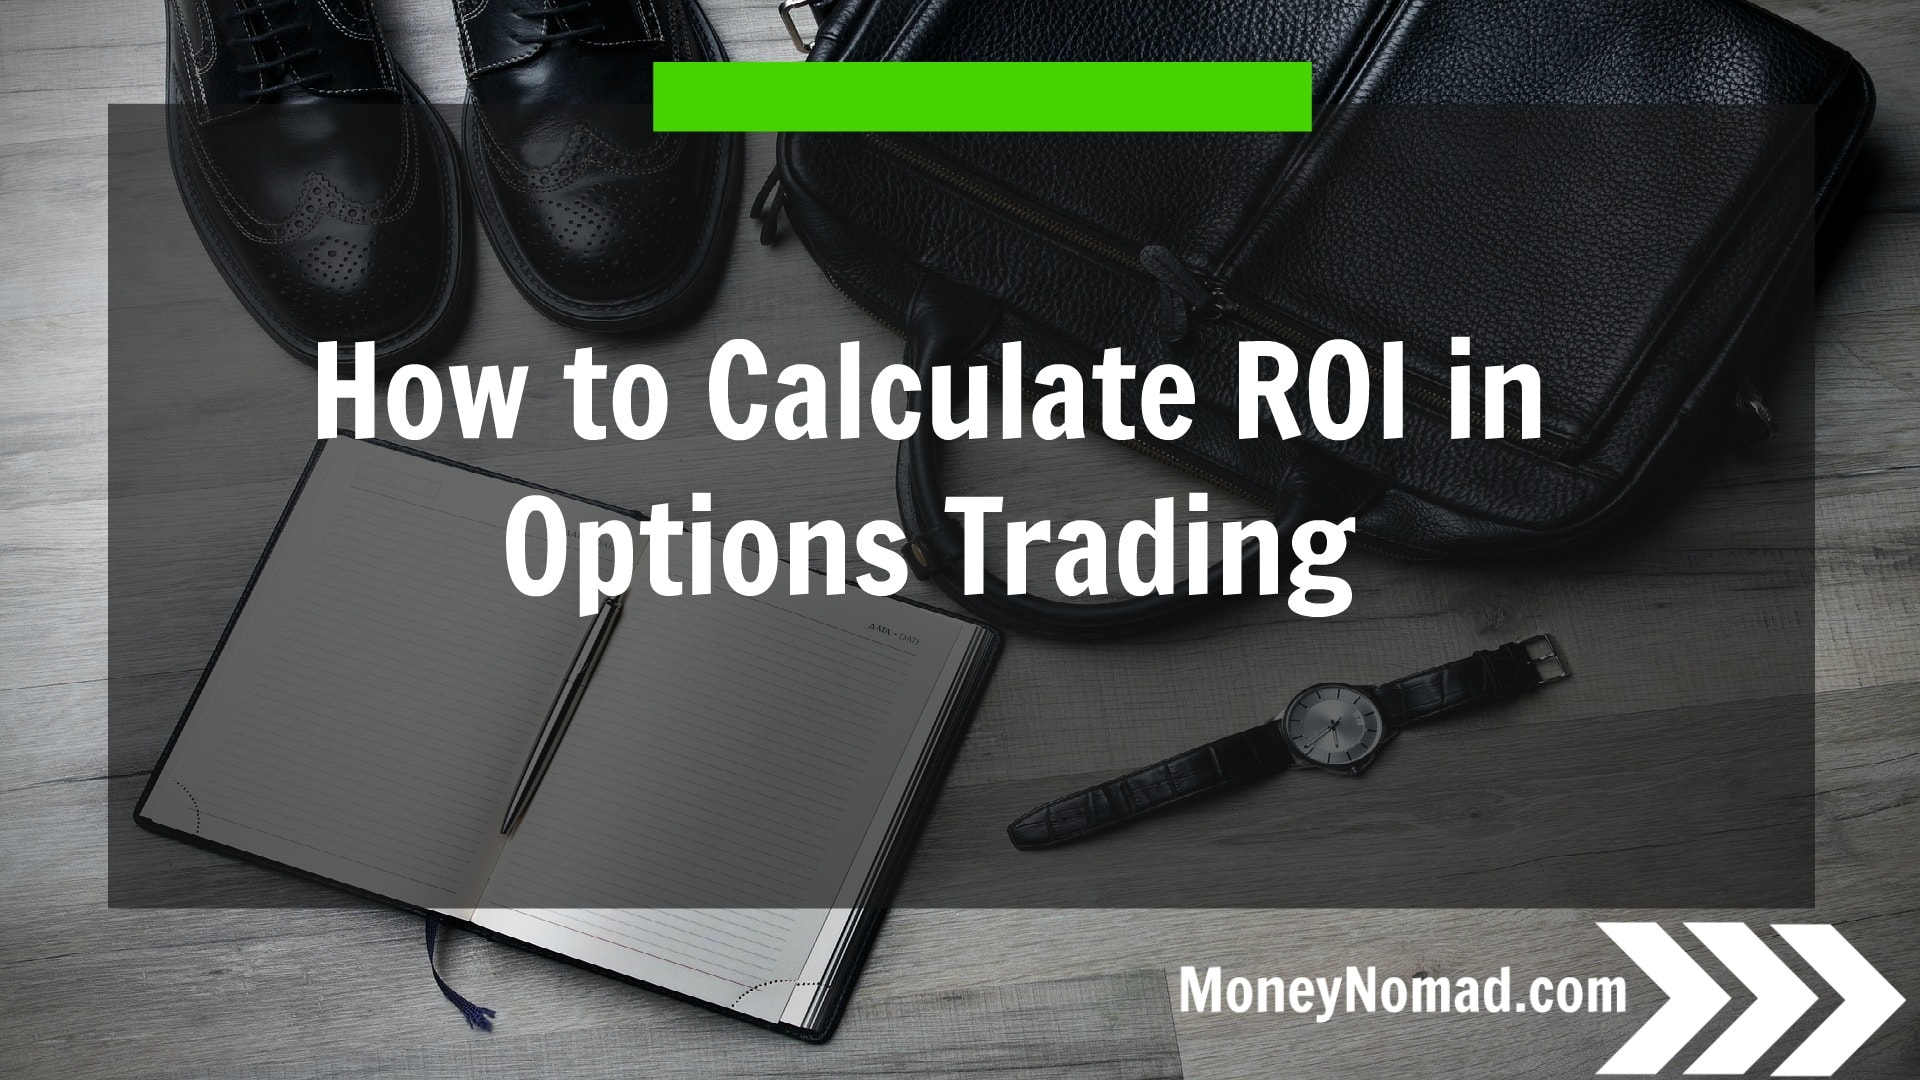 How Much Money Do You Need to Start Trading?